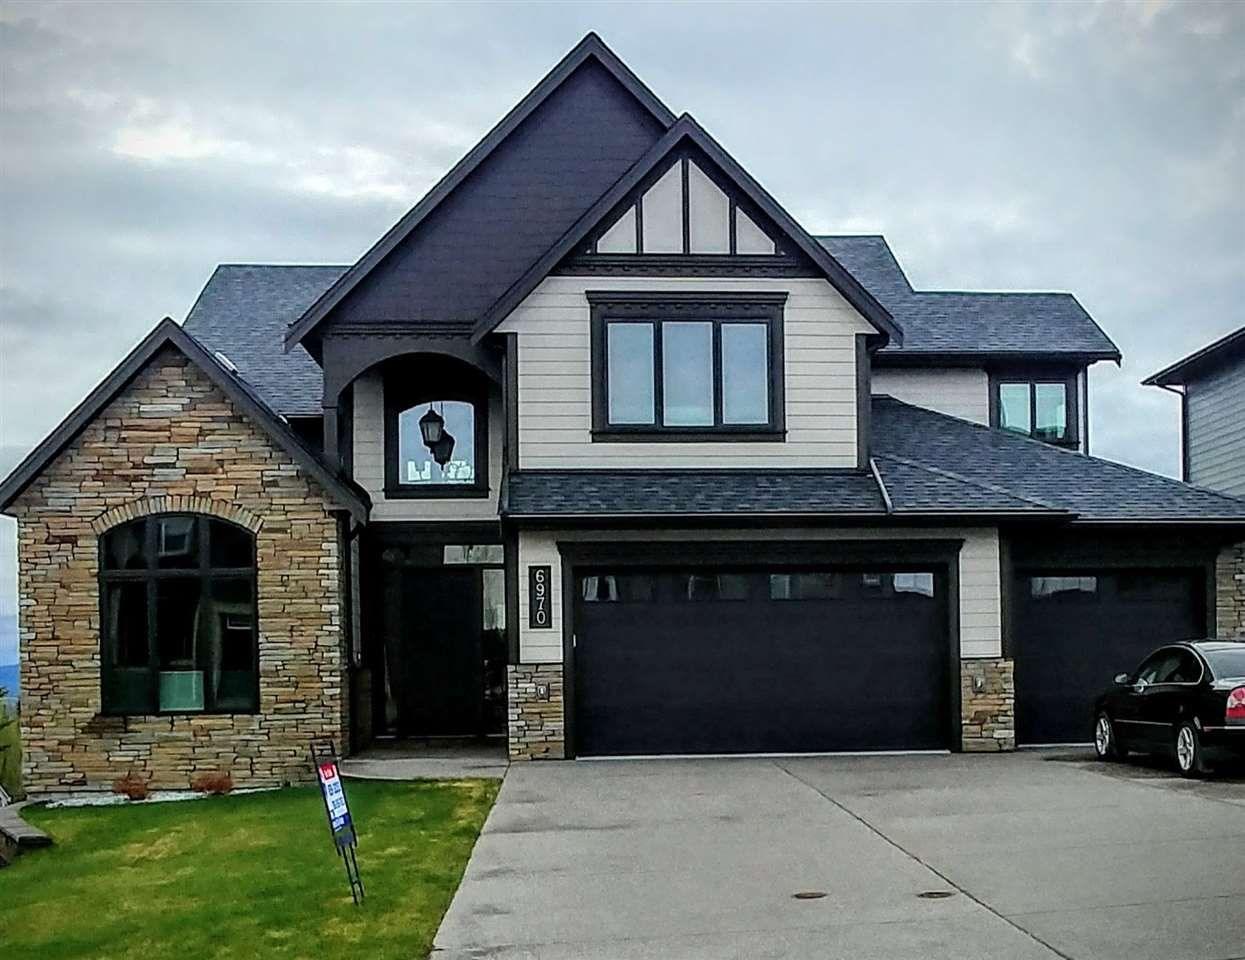 """Main Photo: 6970 WESTMOUNT Drive in Prince George: Lafreniere House for sale in """"LAFRENIERE"""" (PG City South (Zone 74))  : MLS®# R2255279"""